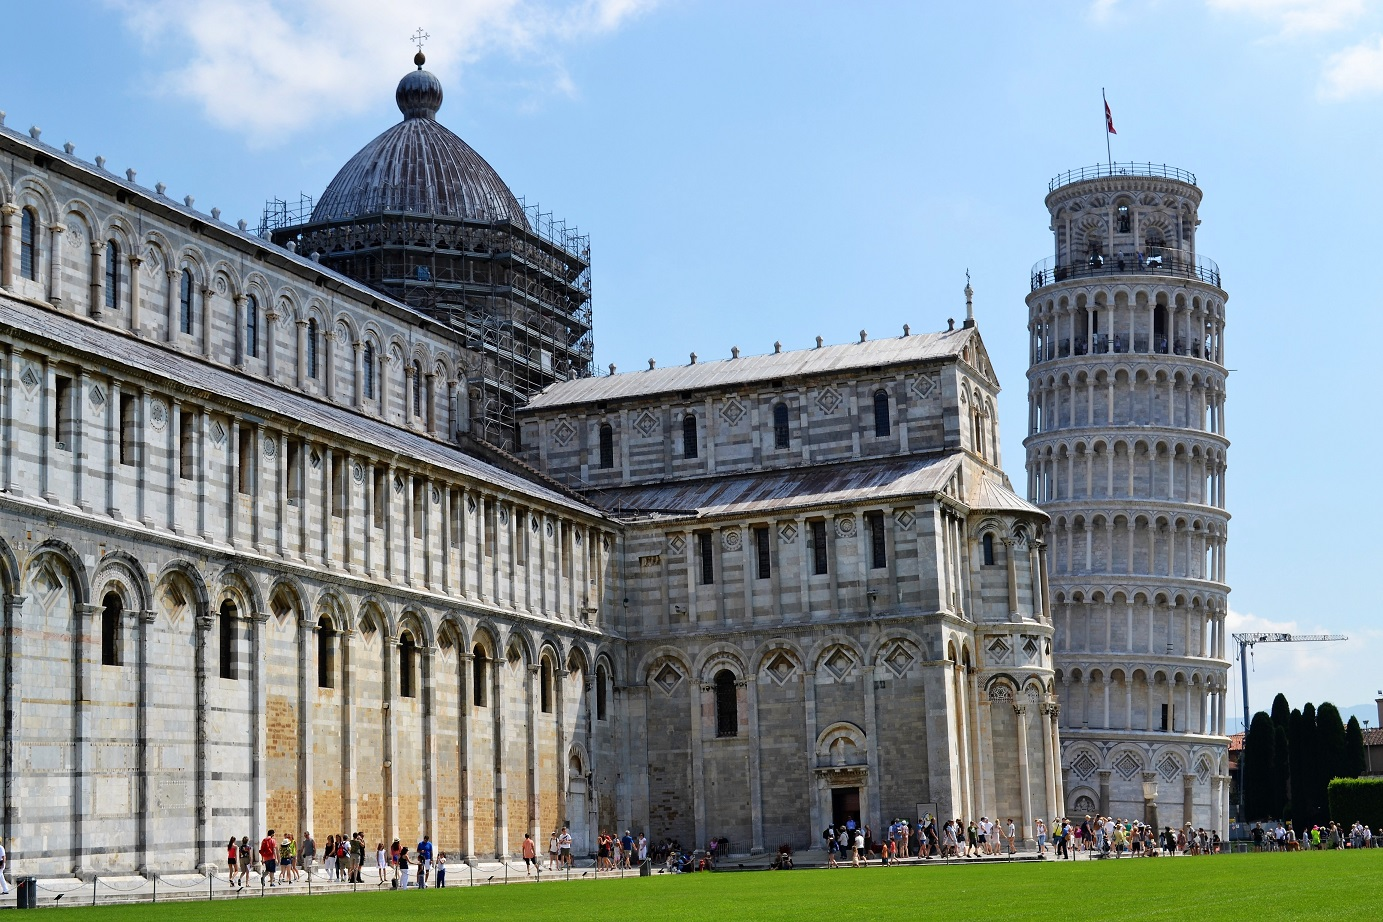 An overview of the complete cathedral with the freestanding bell tower of Pisa